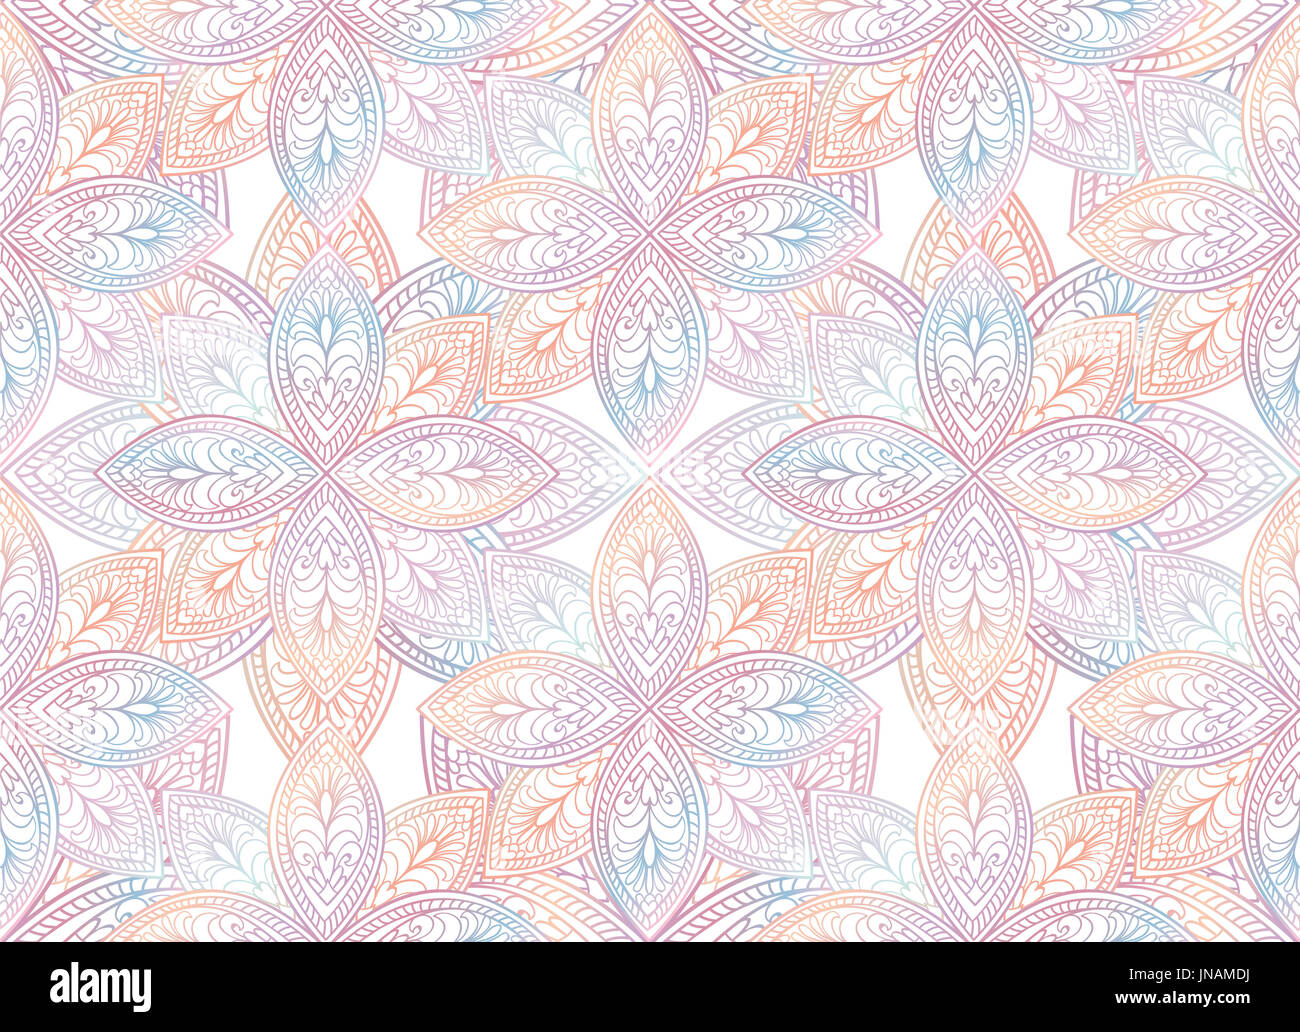 Arabesque seamless pattern stock photos & arabesque seamless pattern